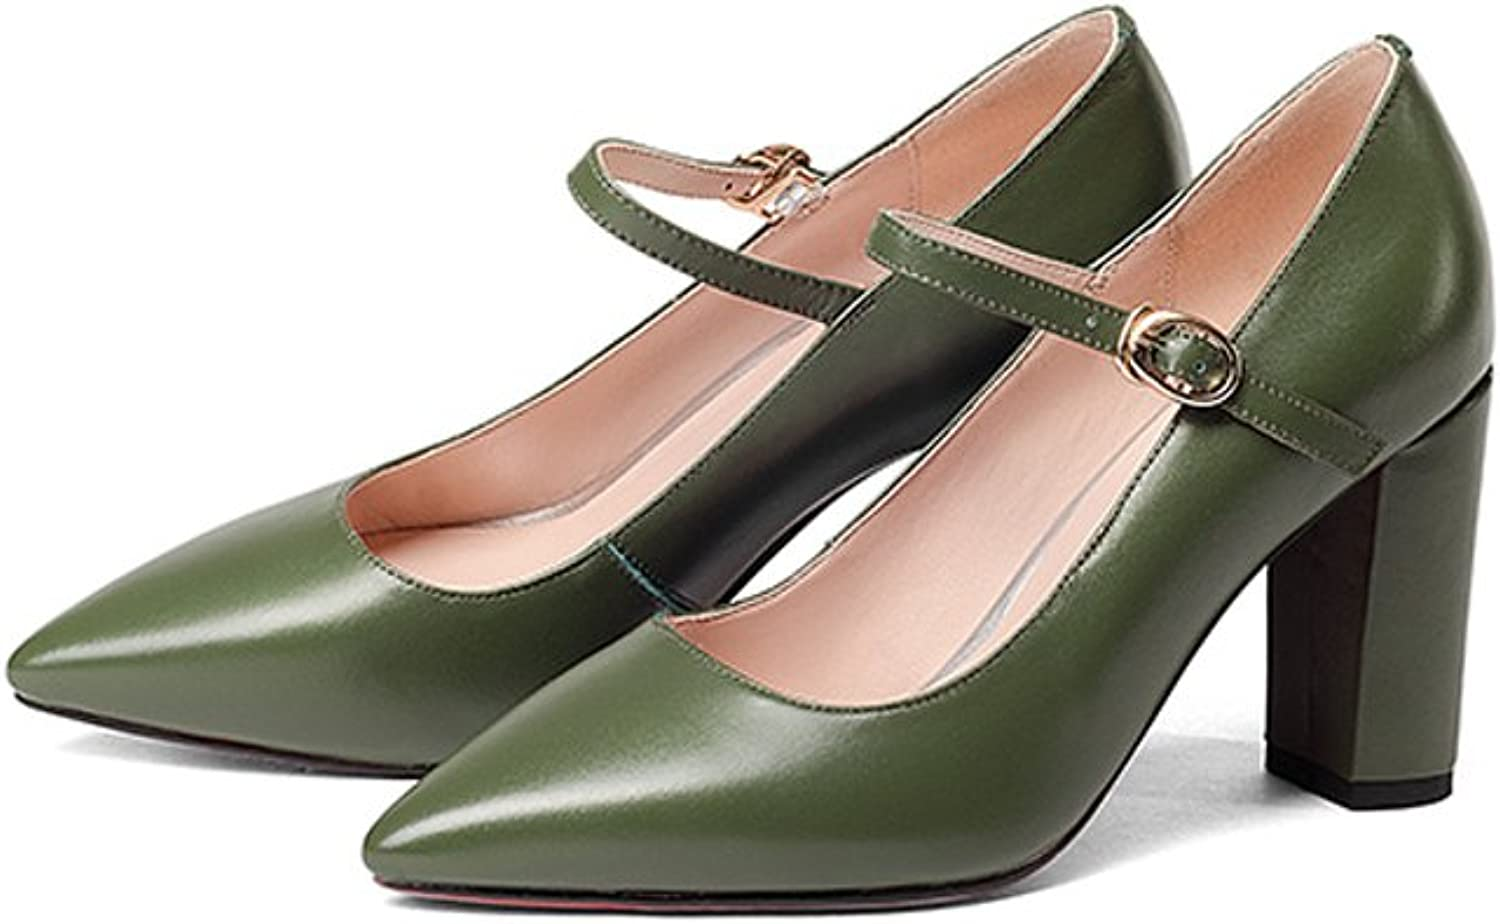 YUBIN Spring Youth Heels Fashion Wild Leather Shallow Mouth shoes Female Thick with A Word Buckle with Pointed Leather shoes (color   Green, Size   37)